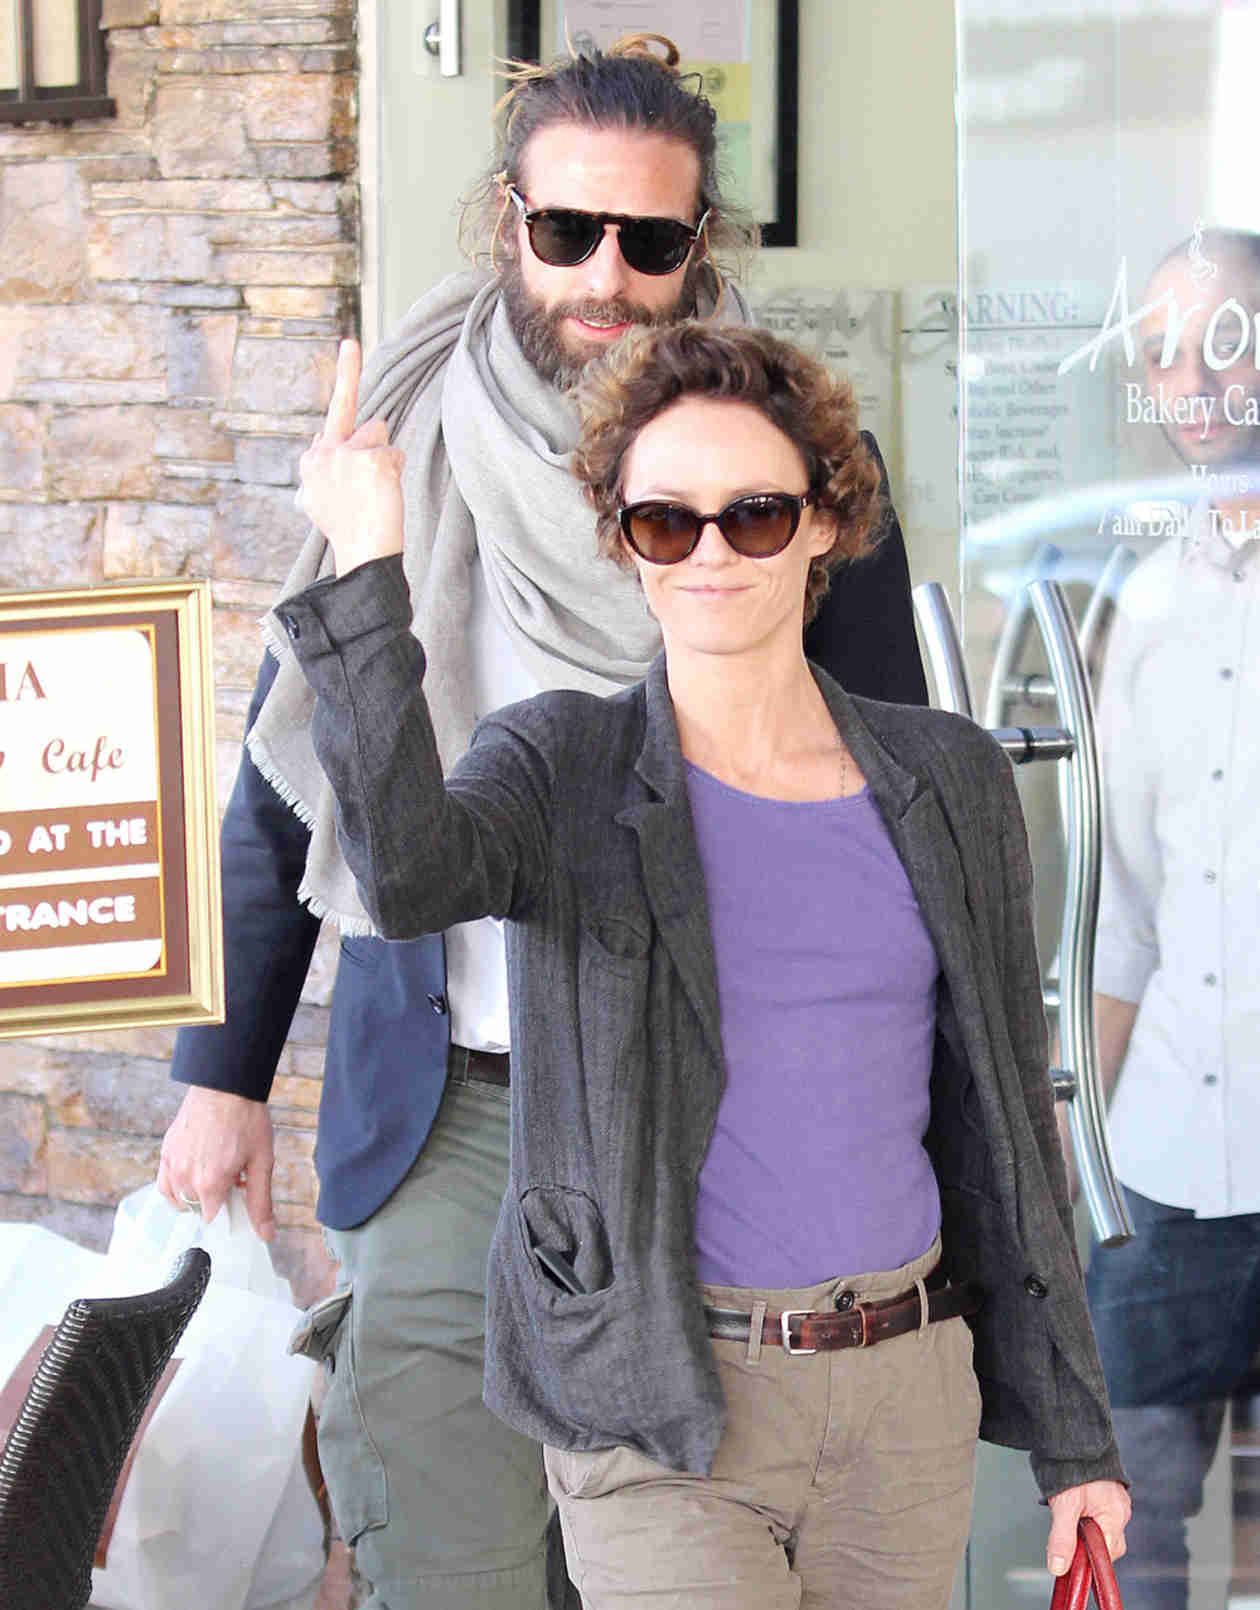 Vanessa Paradis Chops Off Her Hair Amid Rumors of Ex Johnny Depp's Engagement (PHOTOS)